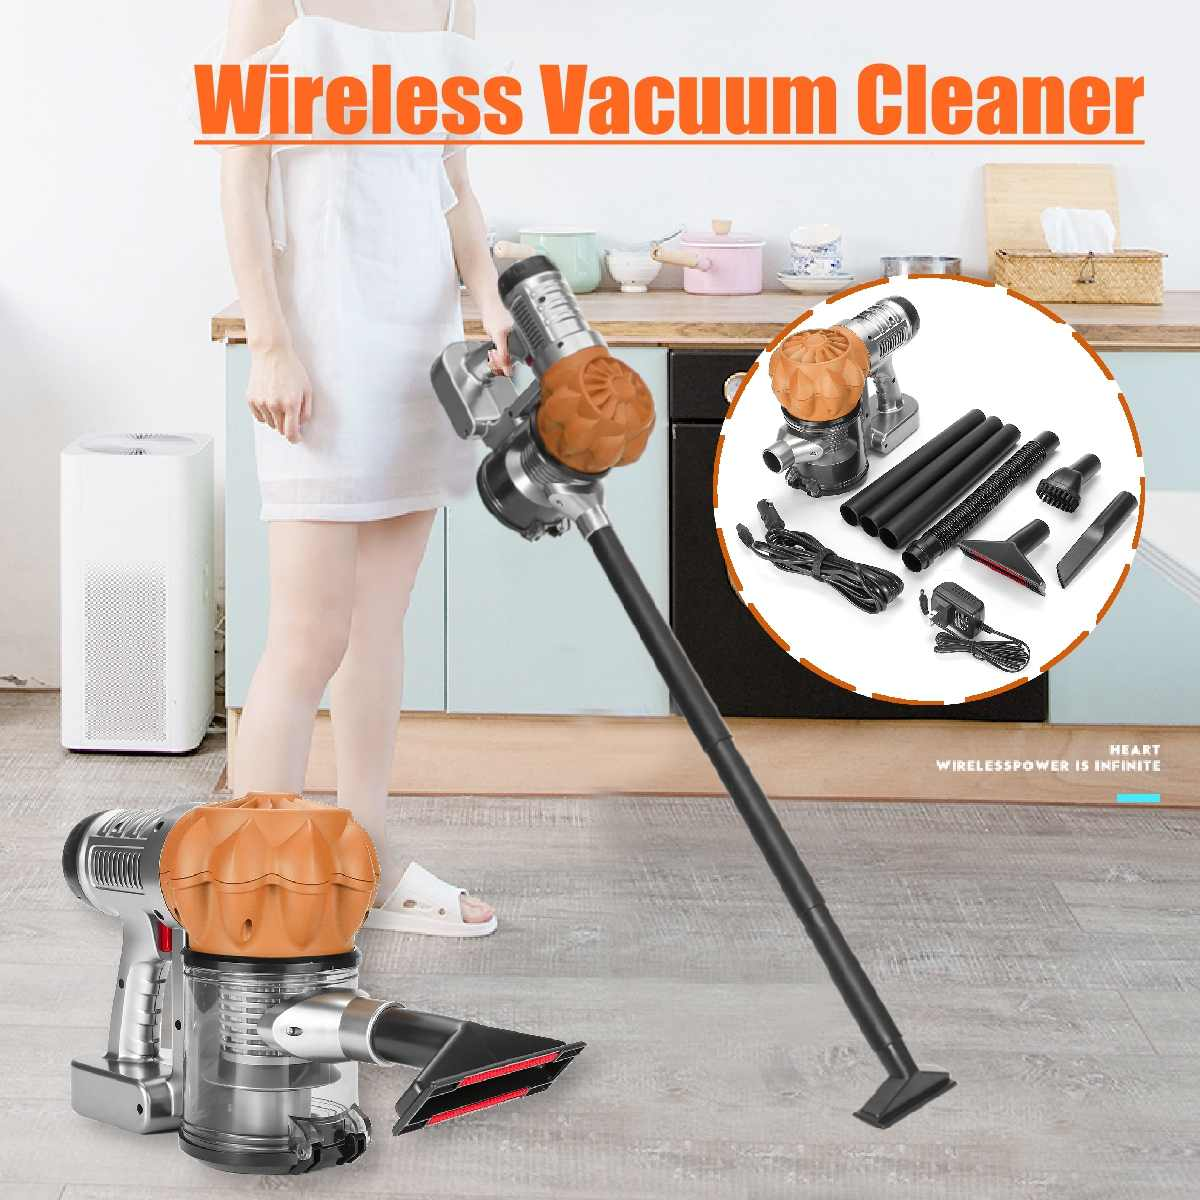 Wireless Low Noise Home Portable Vacuum Cleaner Handheld Wiping & Abosorbing Dust Collector Household Mop Aspirator  Gold